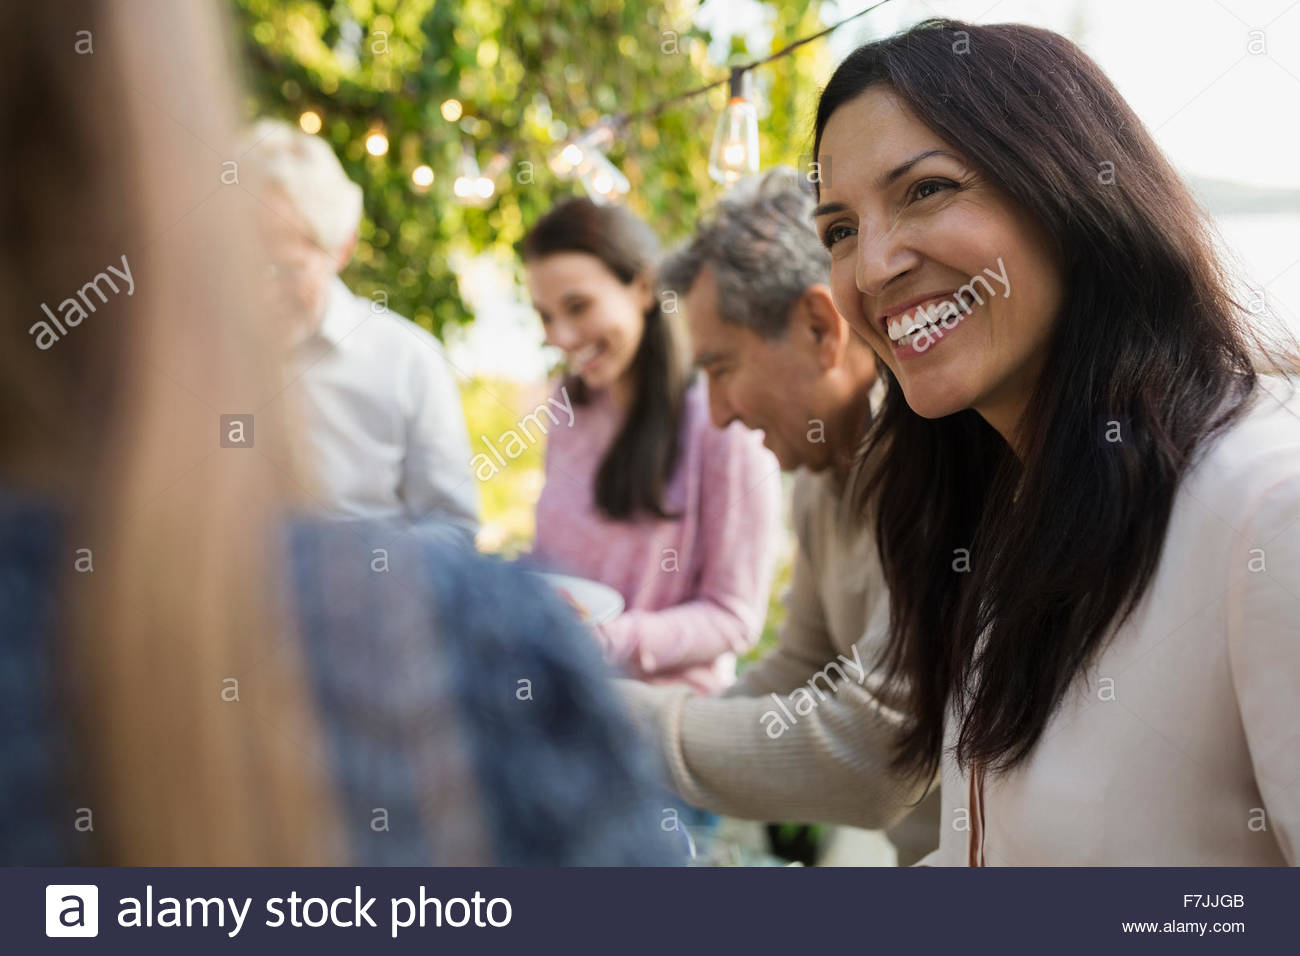 Smiling woman talking at social gathering - Stock Image